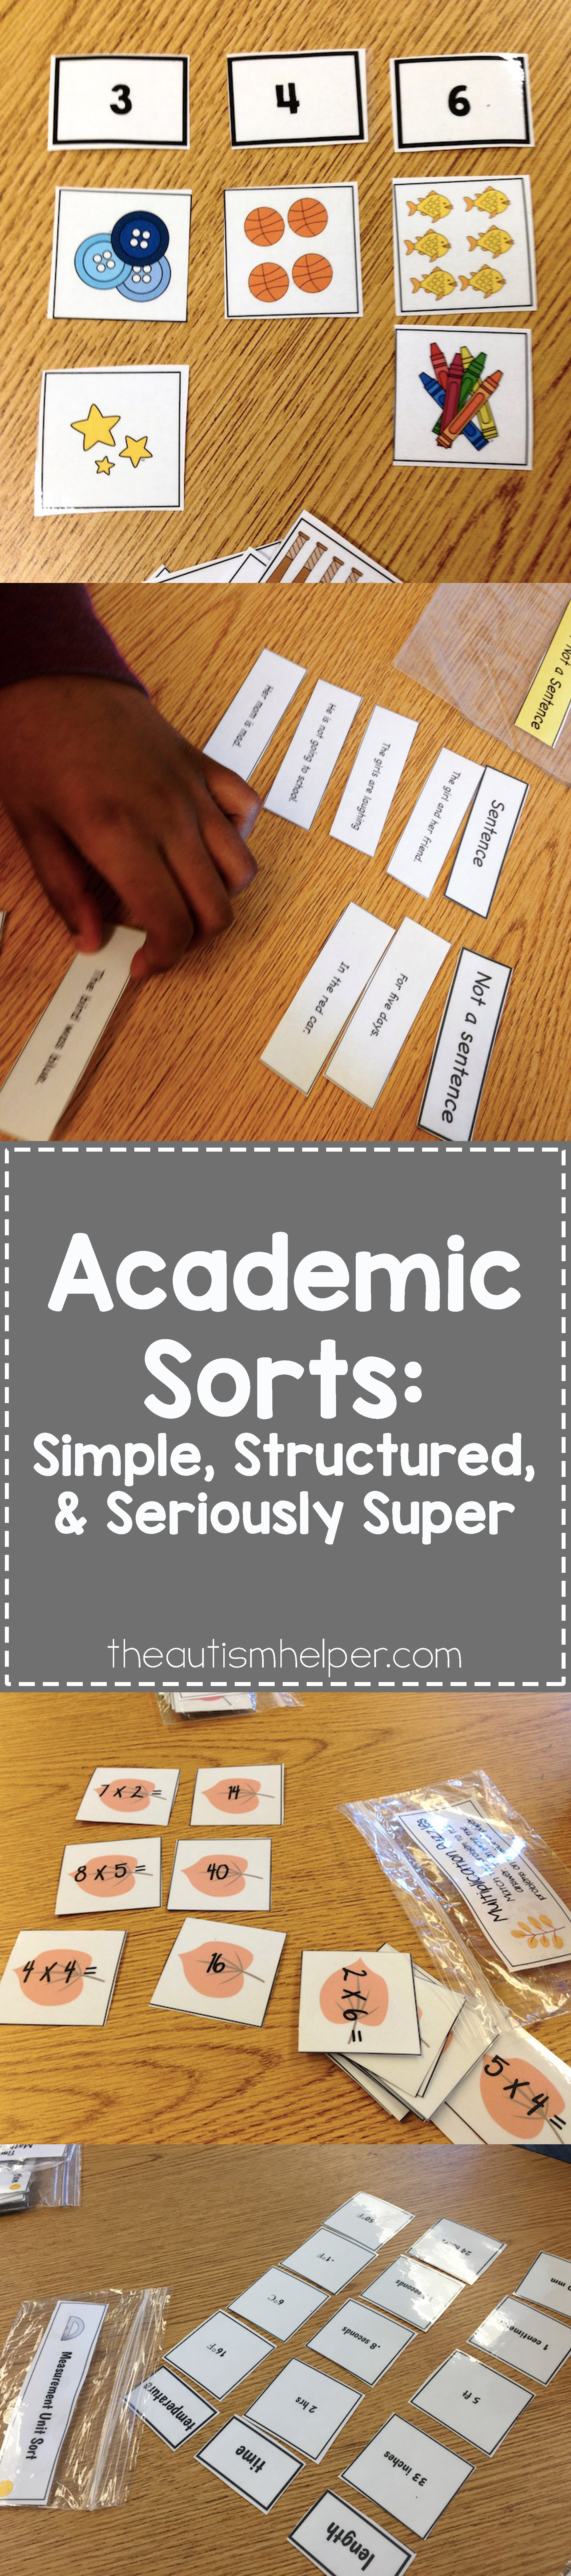 Academic Sorts Simple Structured And Seriously Super